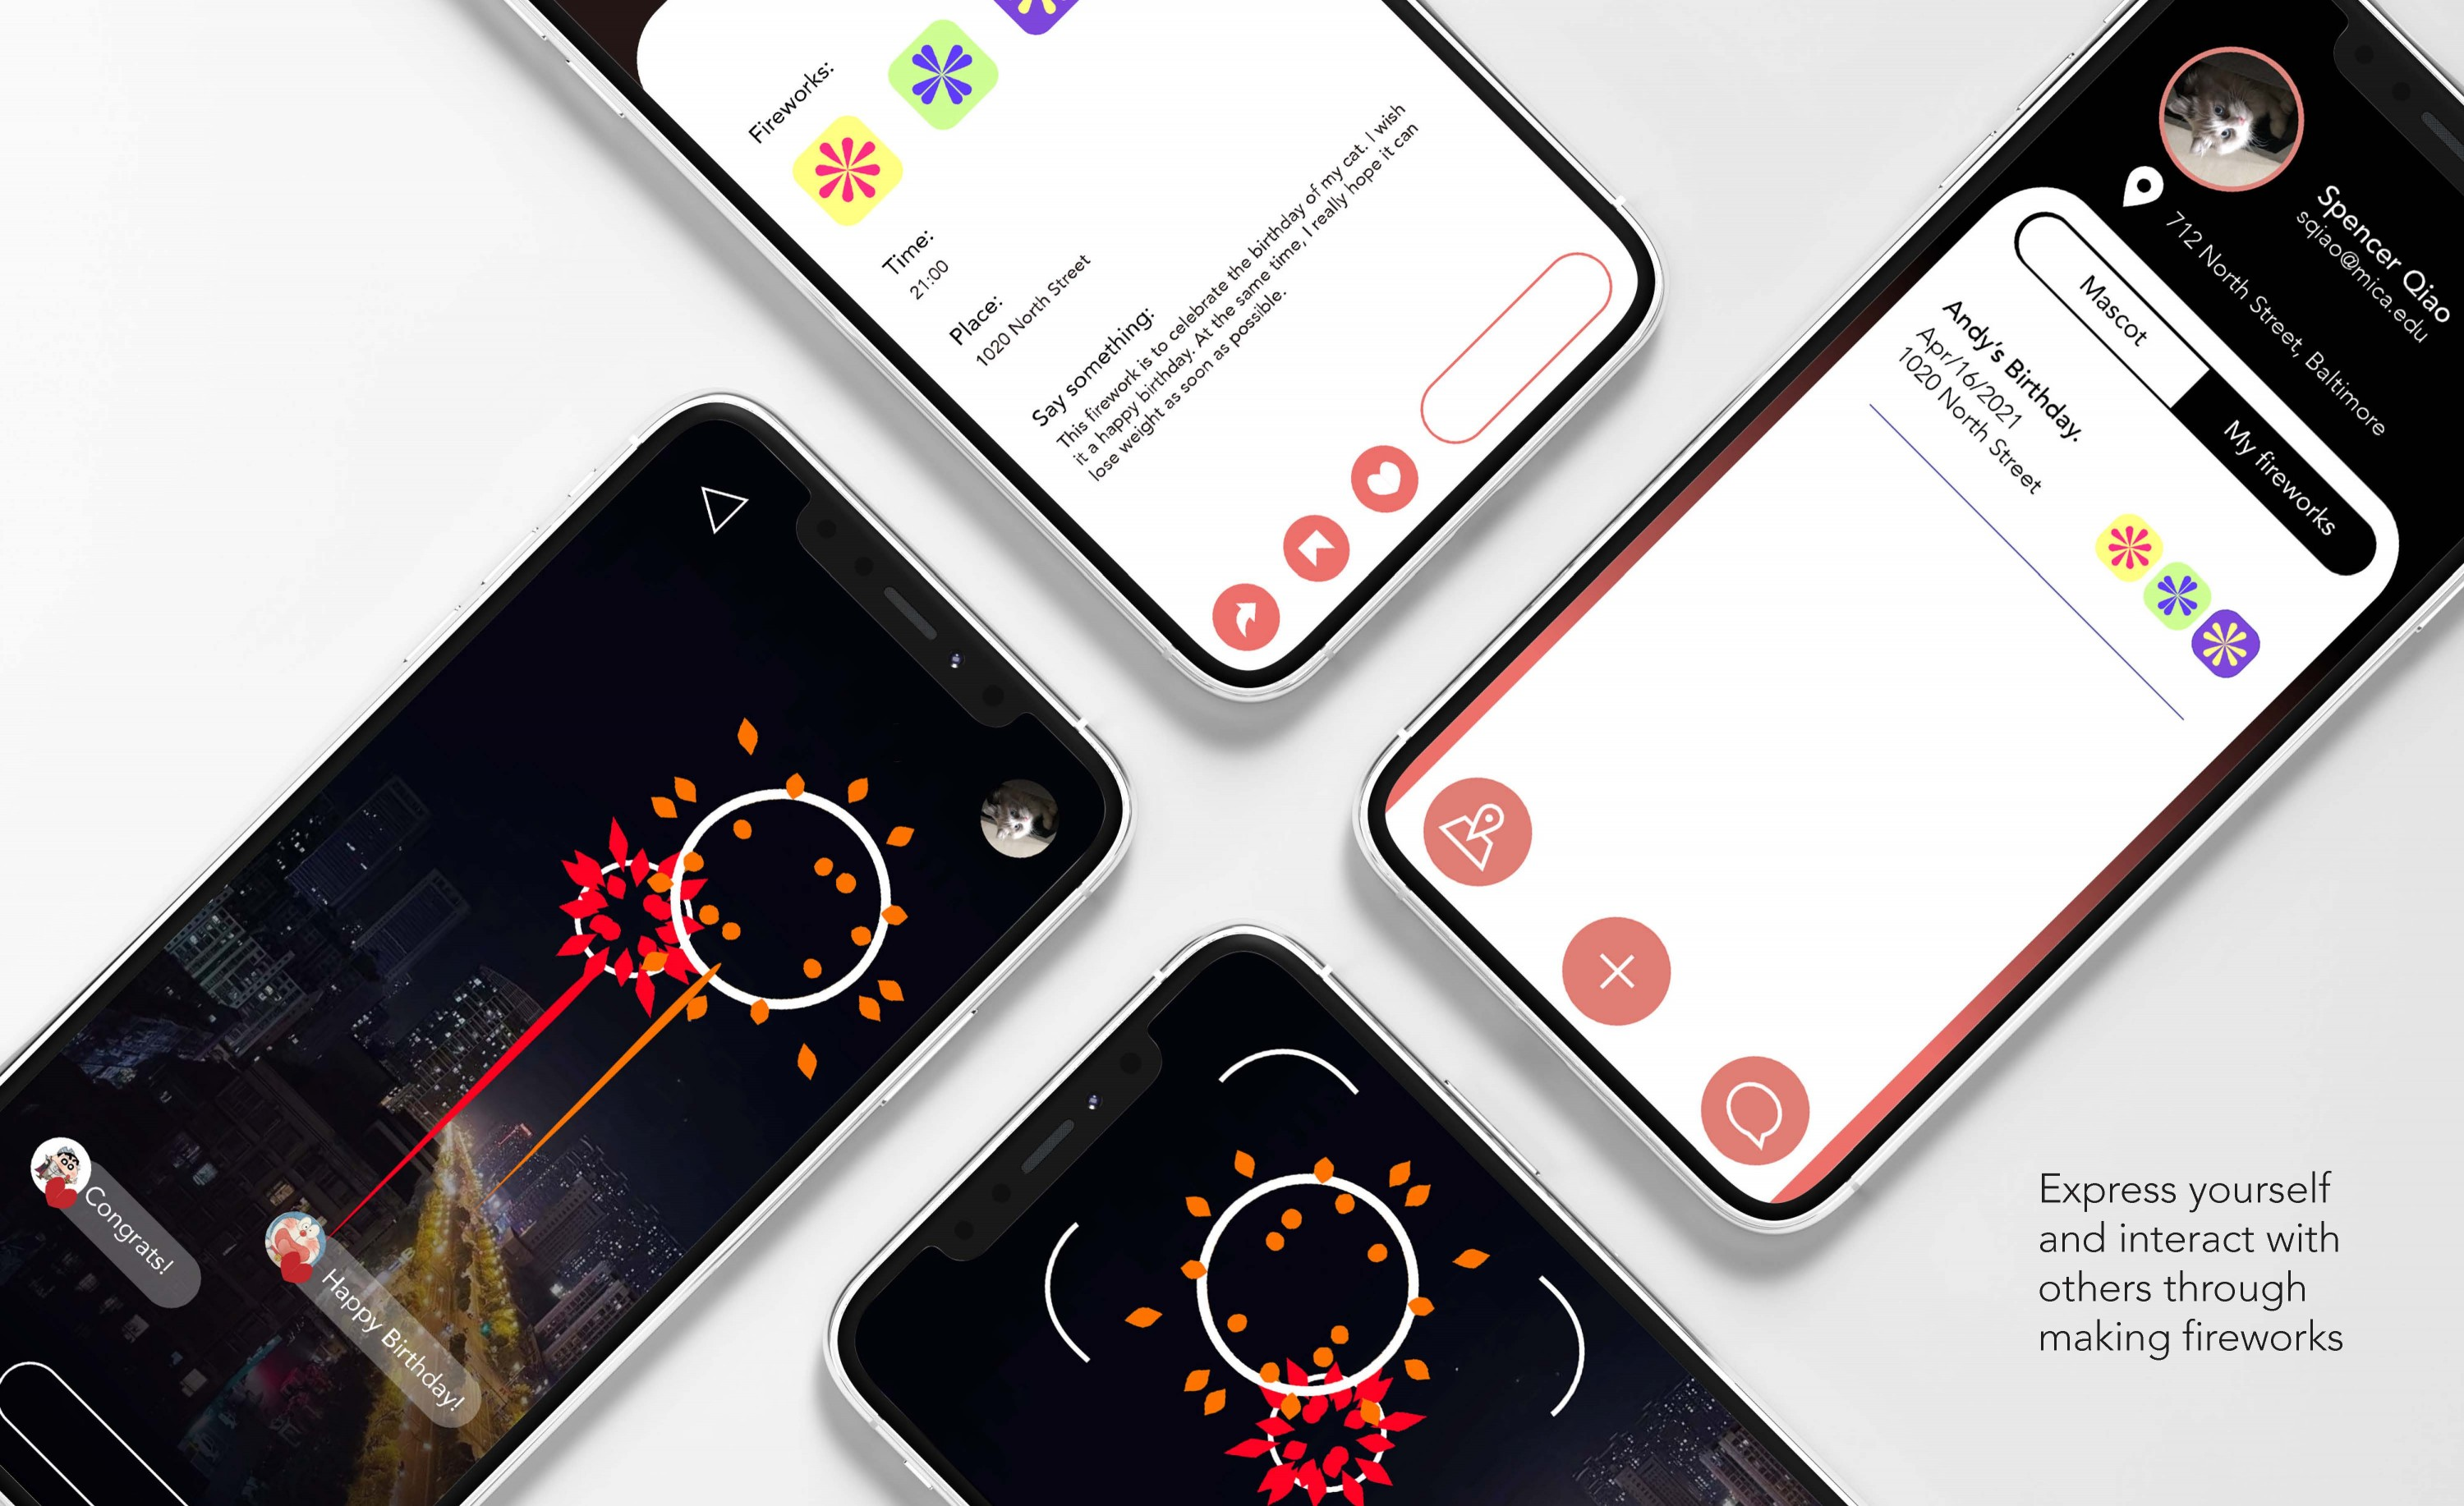 With the development of society, people's pressure is increasing, and most people lack an effective way to express and relieve their mood. The purpose of my app is to let people use fireworks to help people ease their emotions. People can express their em